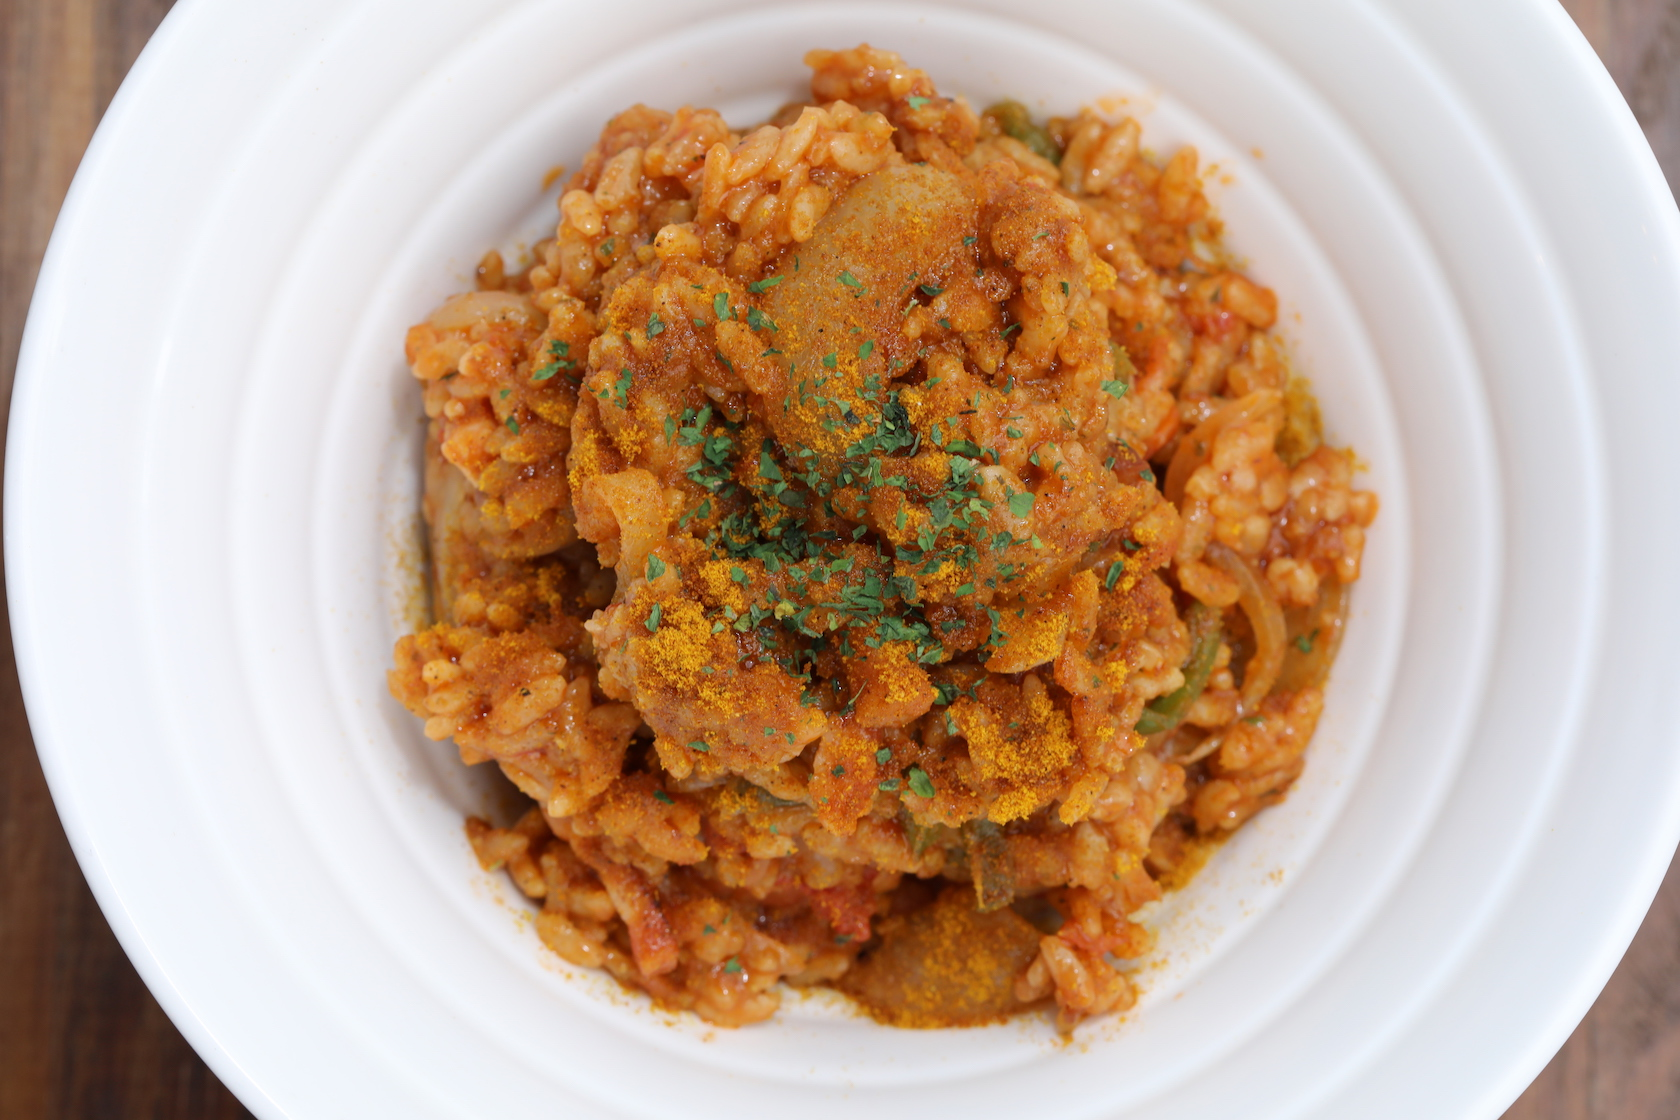 LENNリゾットカレー(LENN Risotto Curry)1